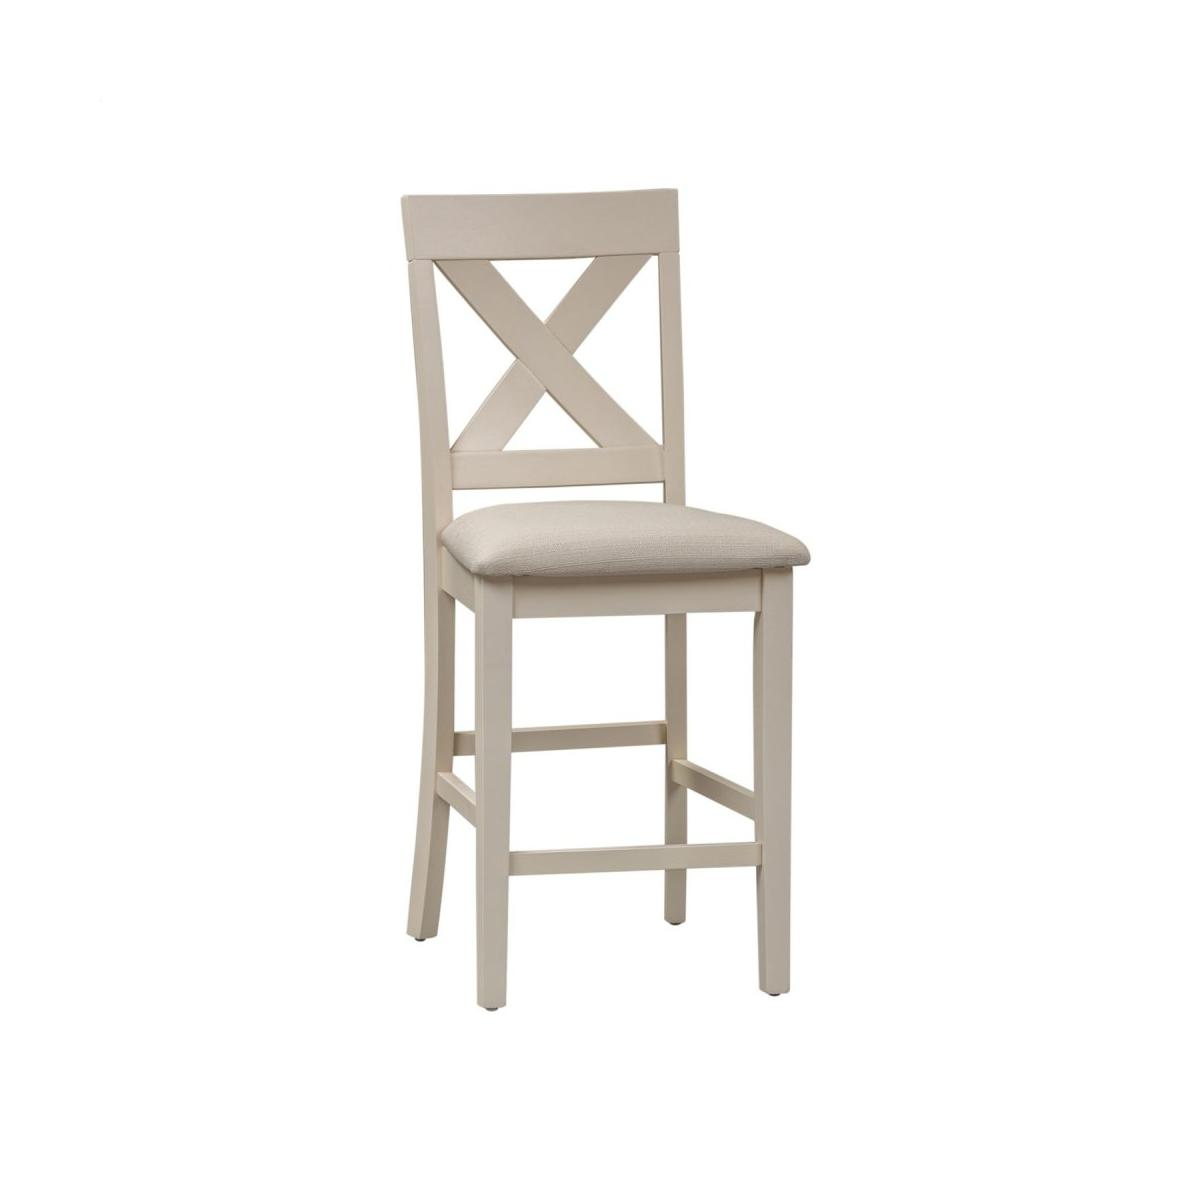 X Back Counter Chair- Single Chair